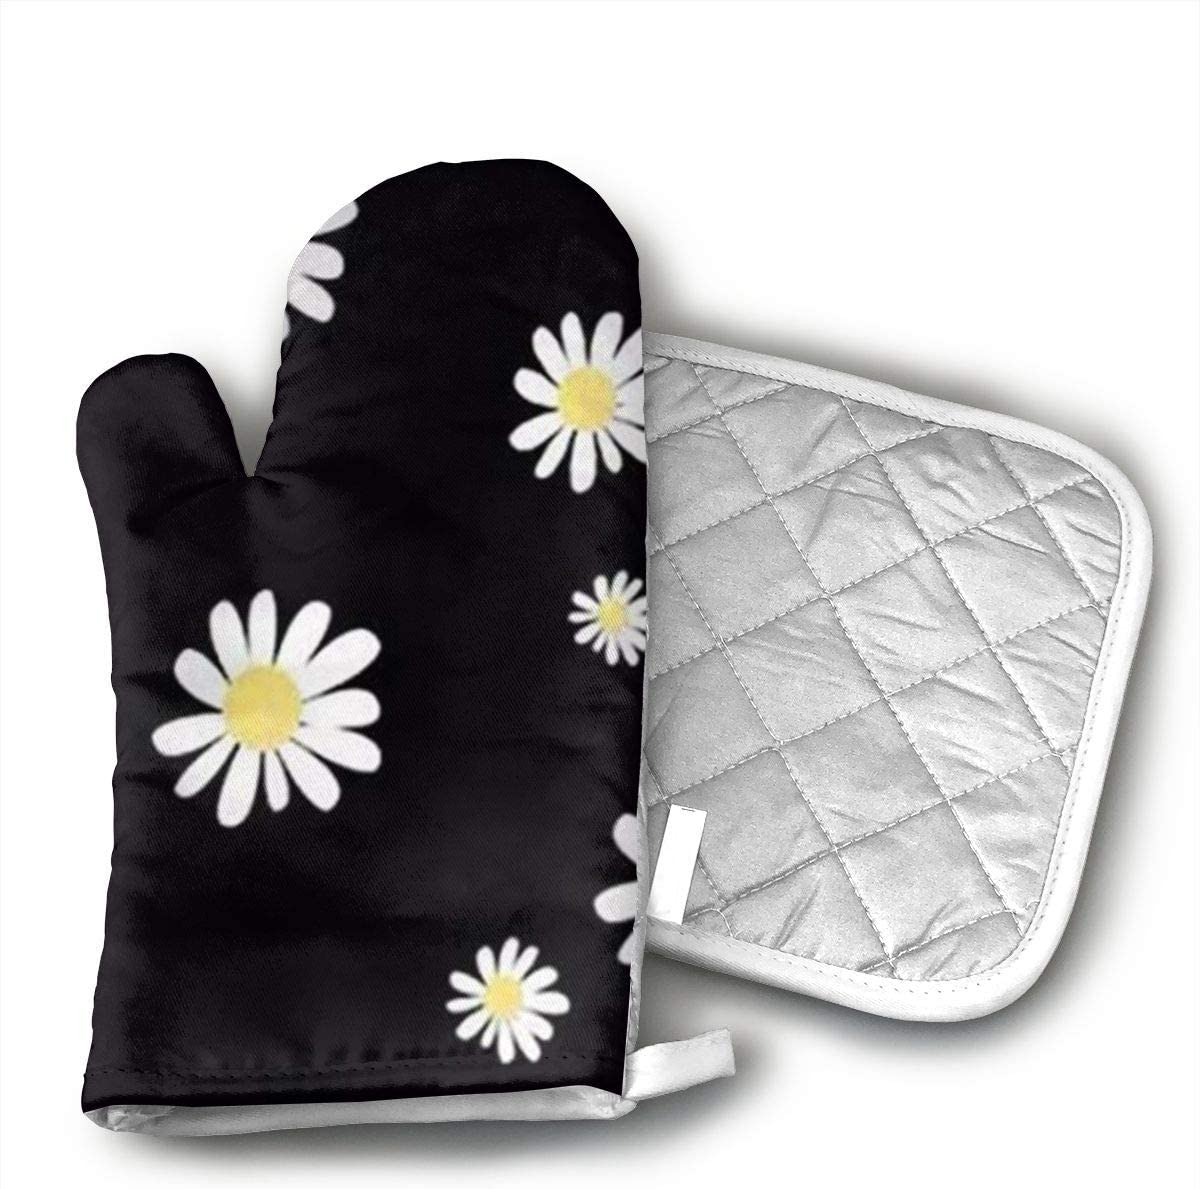 BVHOEV Daisy Yellow Flower Polyester/Cotton Oven Mitts and Thermal Pads are Ideal for handling hot cookware